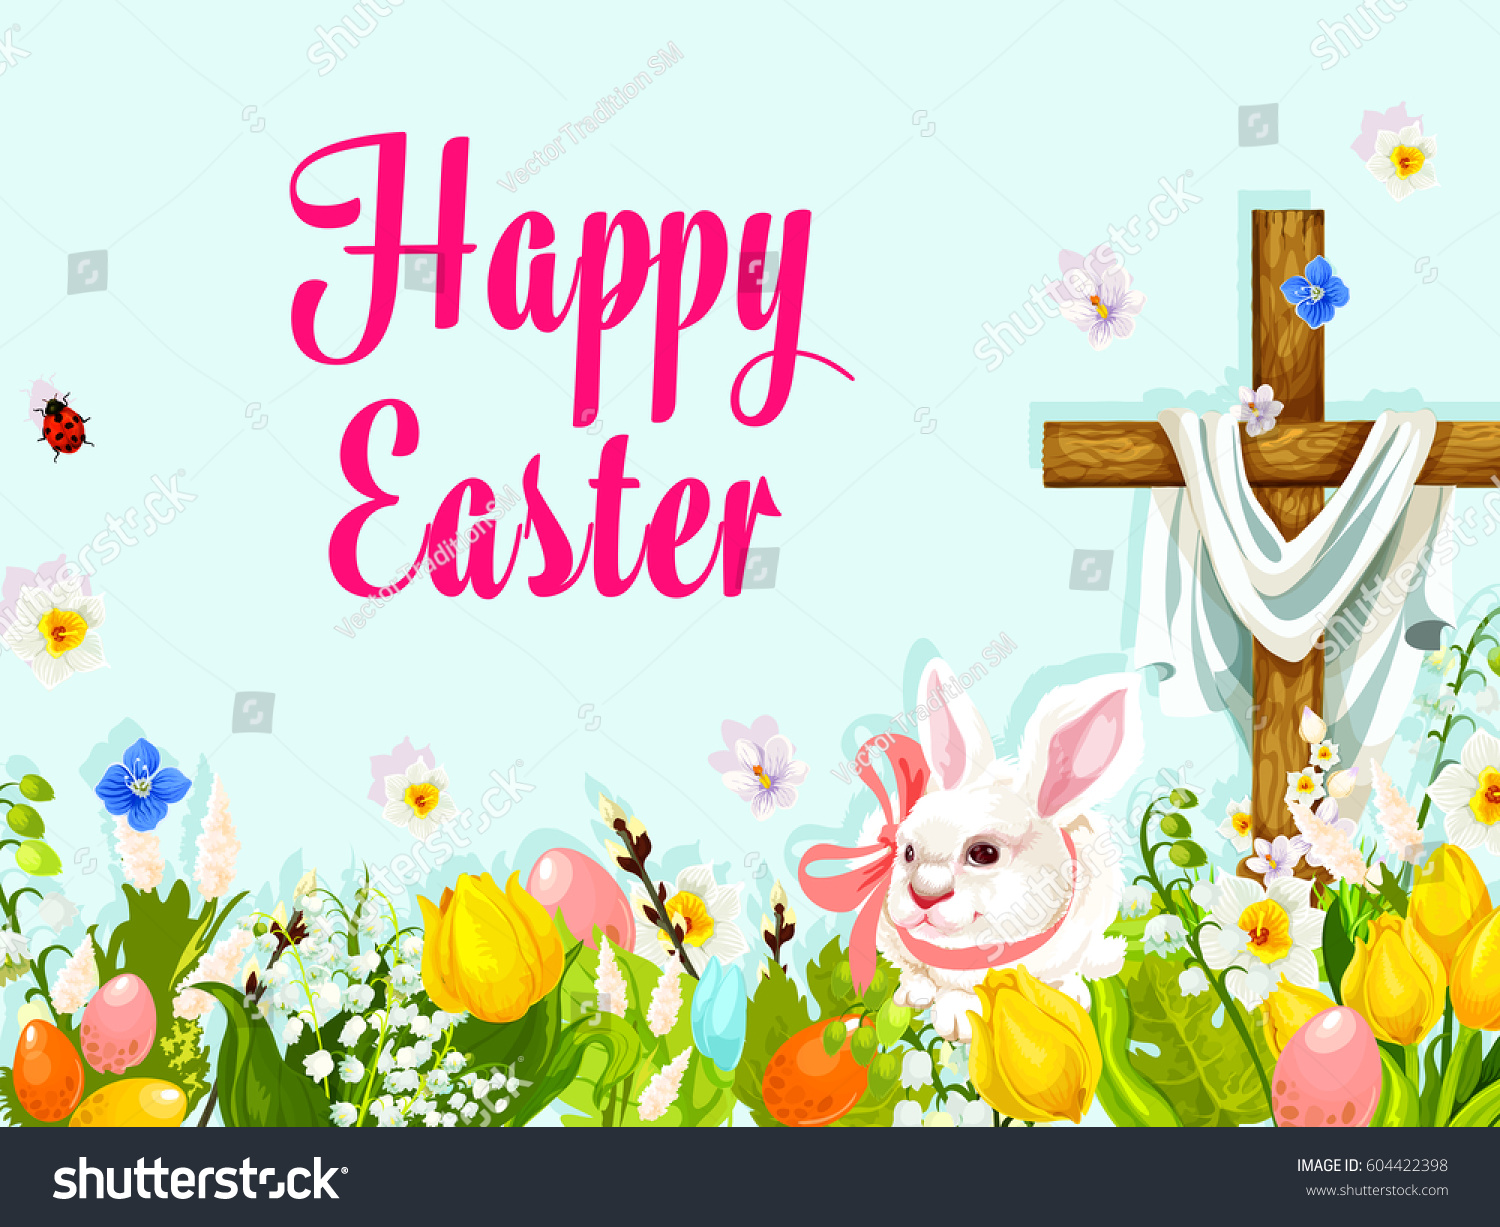 Easter Egg Hunt Rabbit With Cross Greeting Poster Eggs Hidden In Grass Of Spring